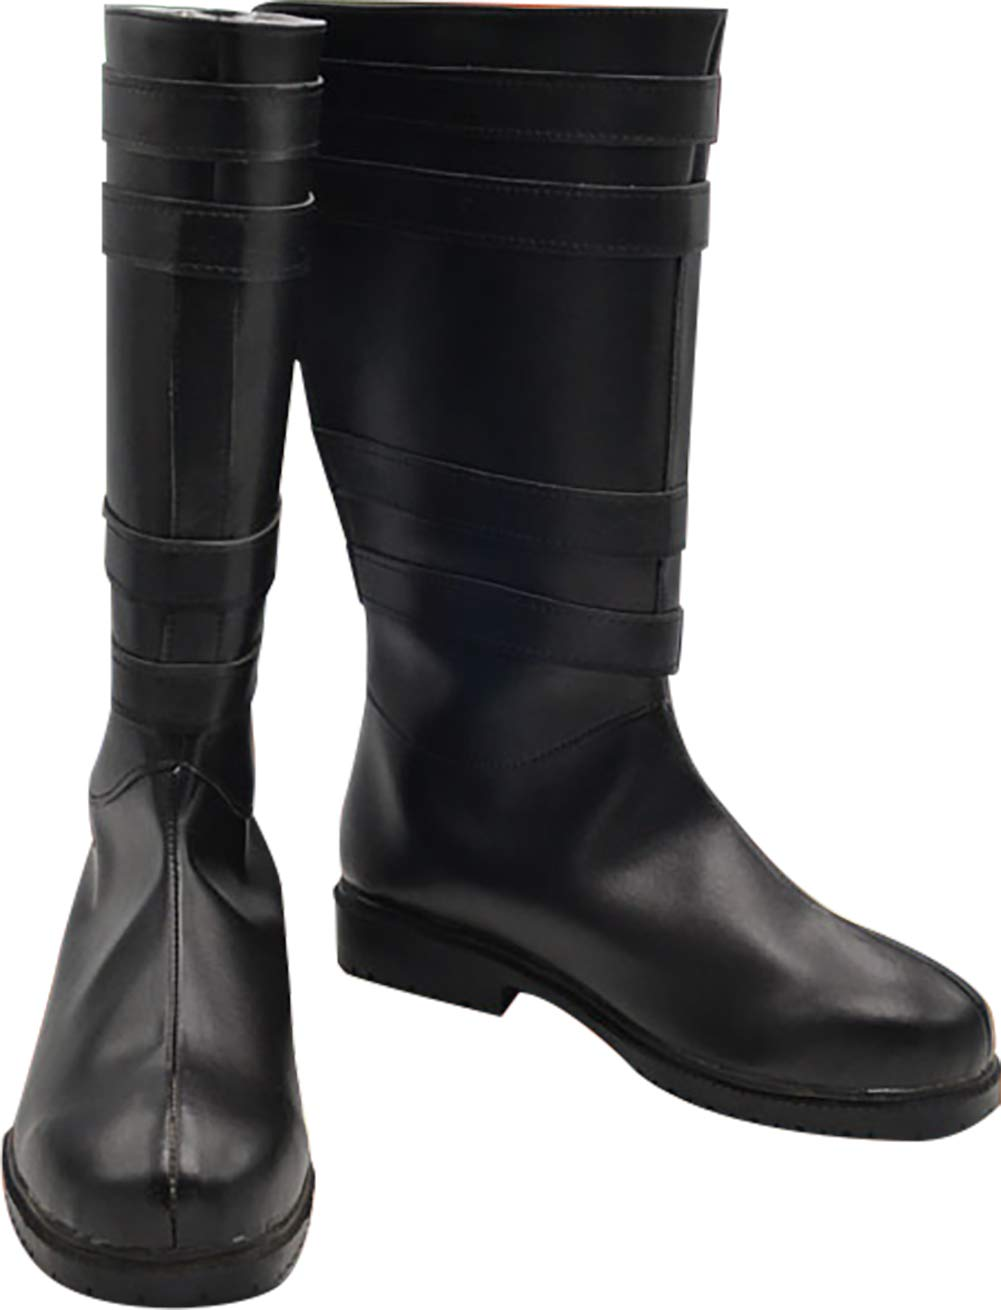 GSFDHDJS Cosplay Boots Shoes for Star Wars Kylo Ren